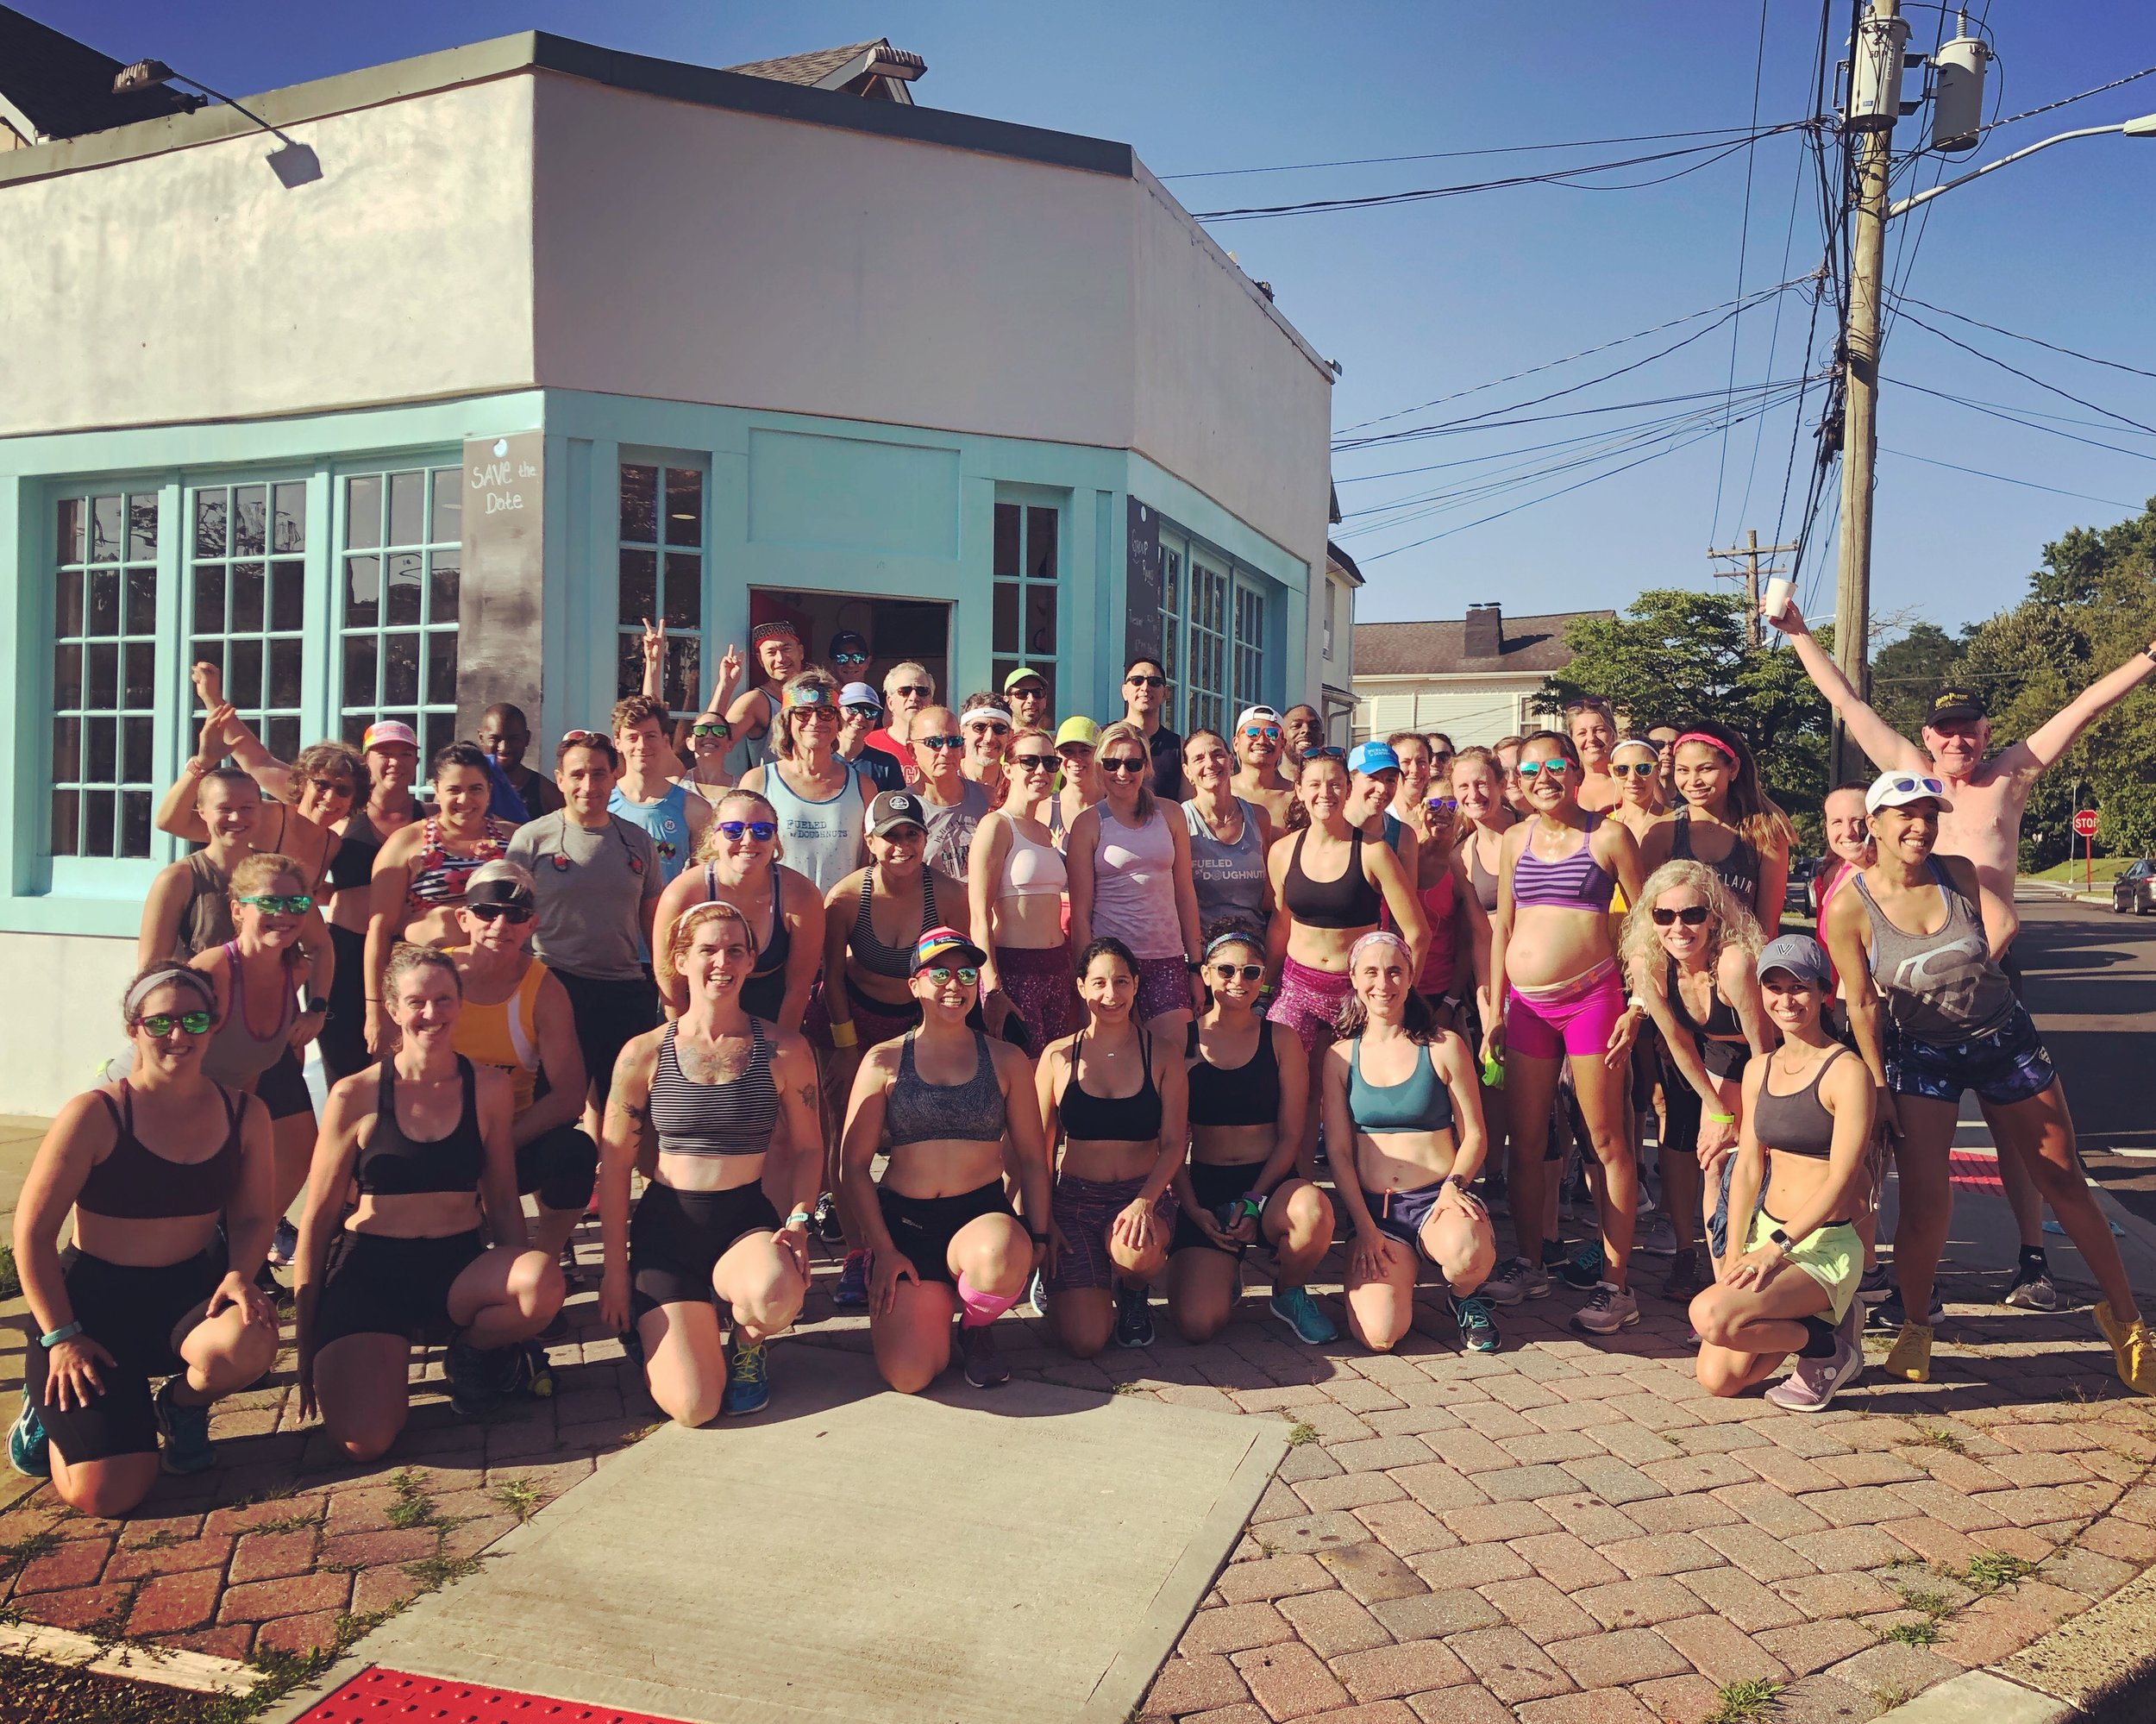 Yet another reminder of what an incredible community we are all a part of on this Sports Bra Squad Day!!!